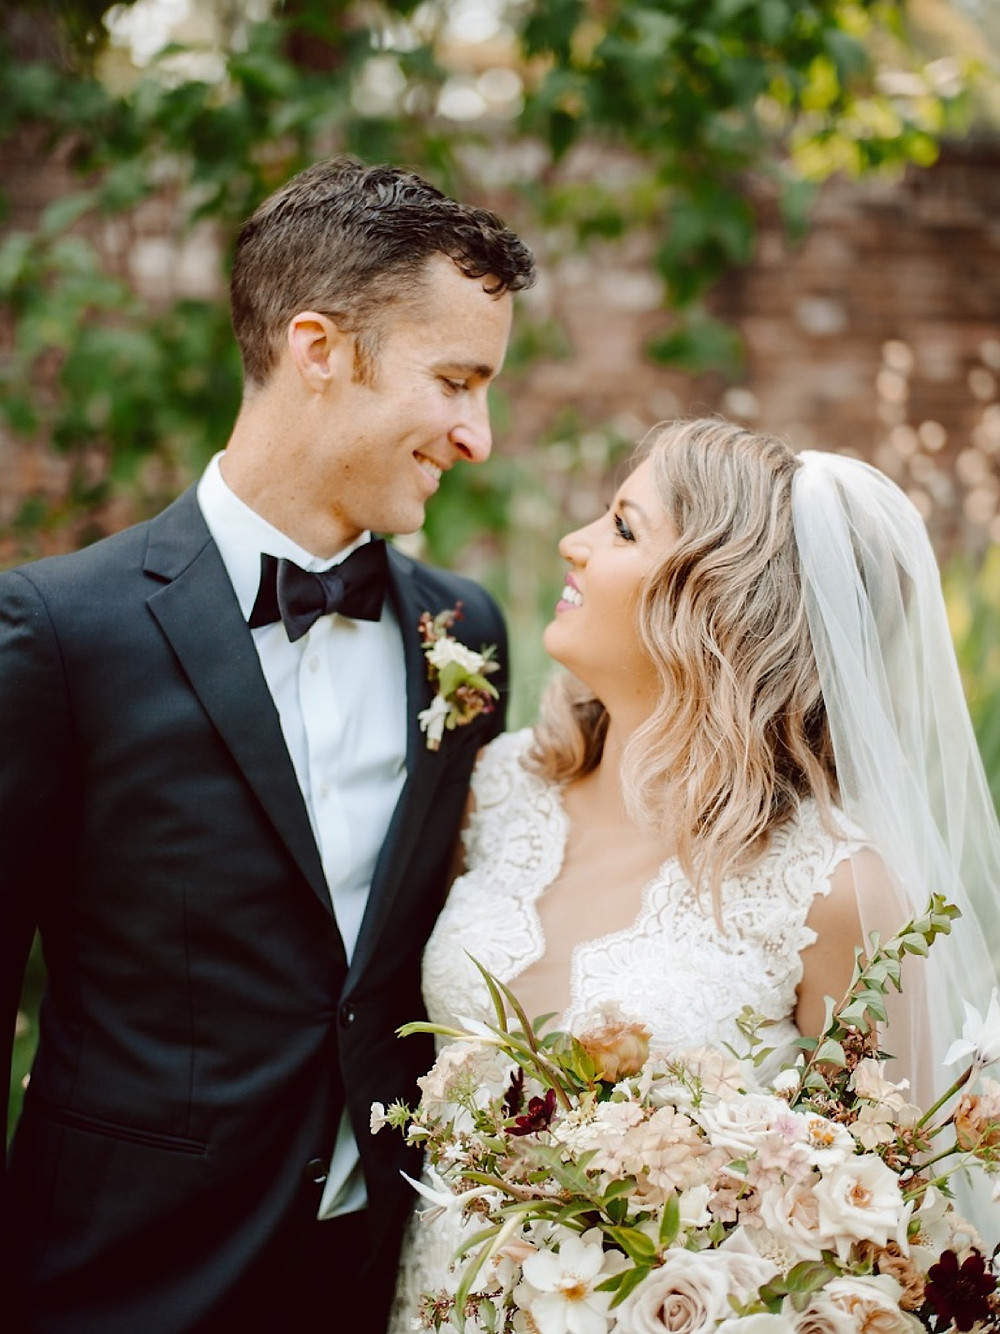 Romantic bride and groom portrait by Benj Haish at Thornewood Castle